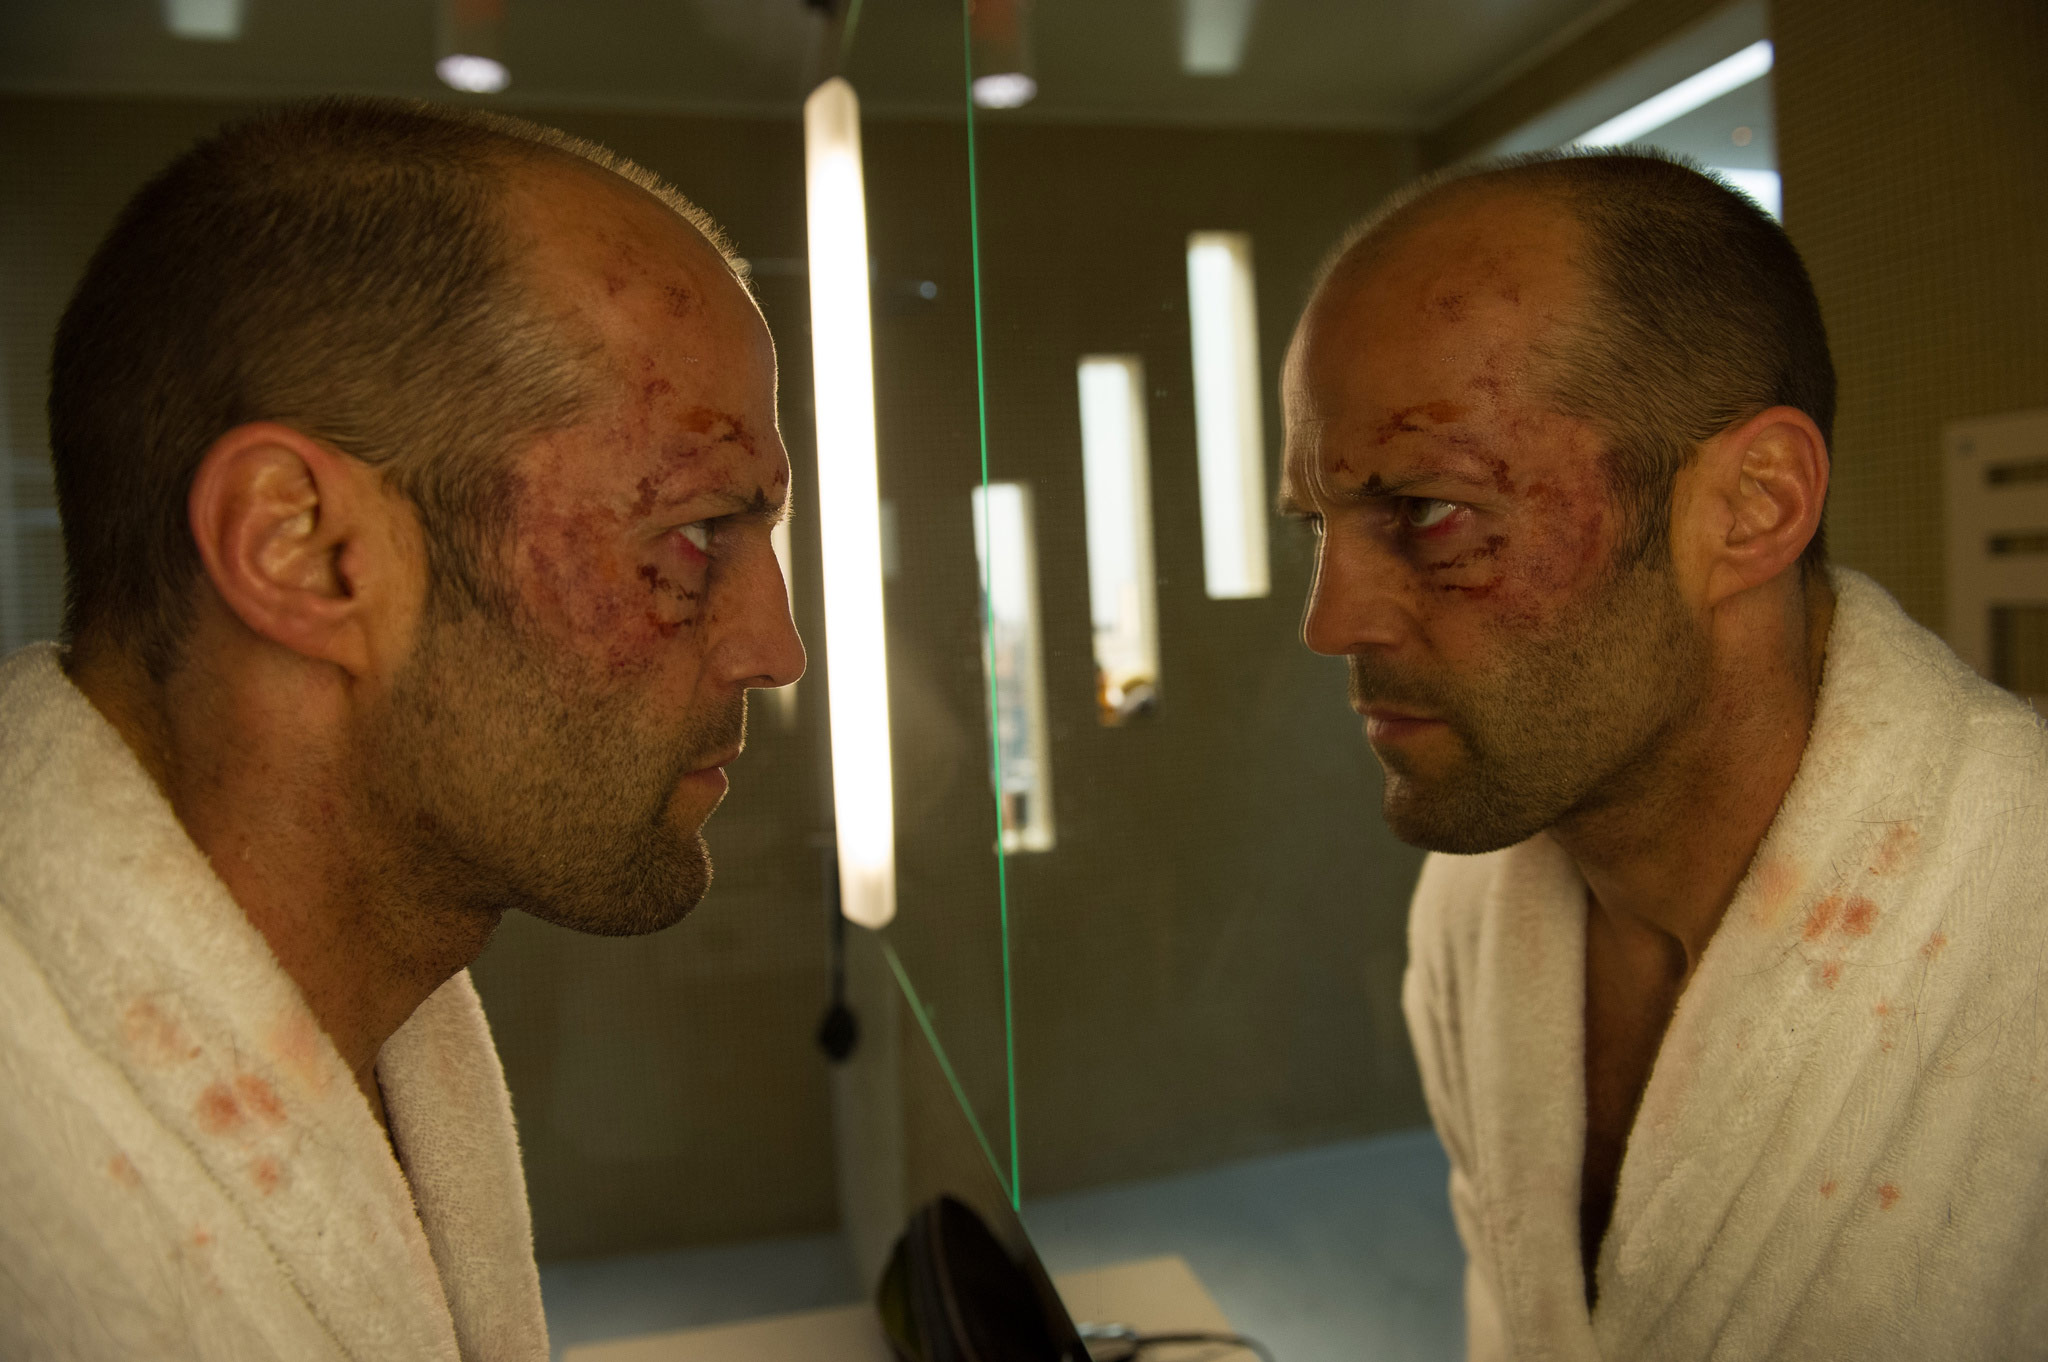 http://pixel.nymag.com/content/dam/daily/vulture/2013/06/28/28-redemption-jason-statham.jpg